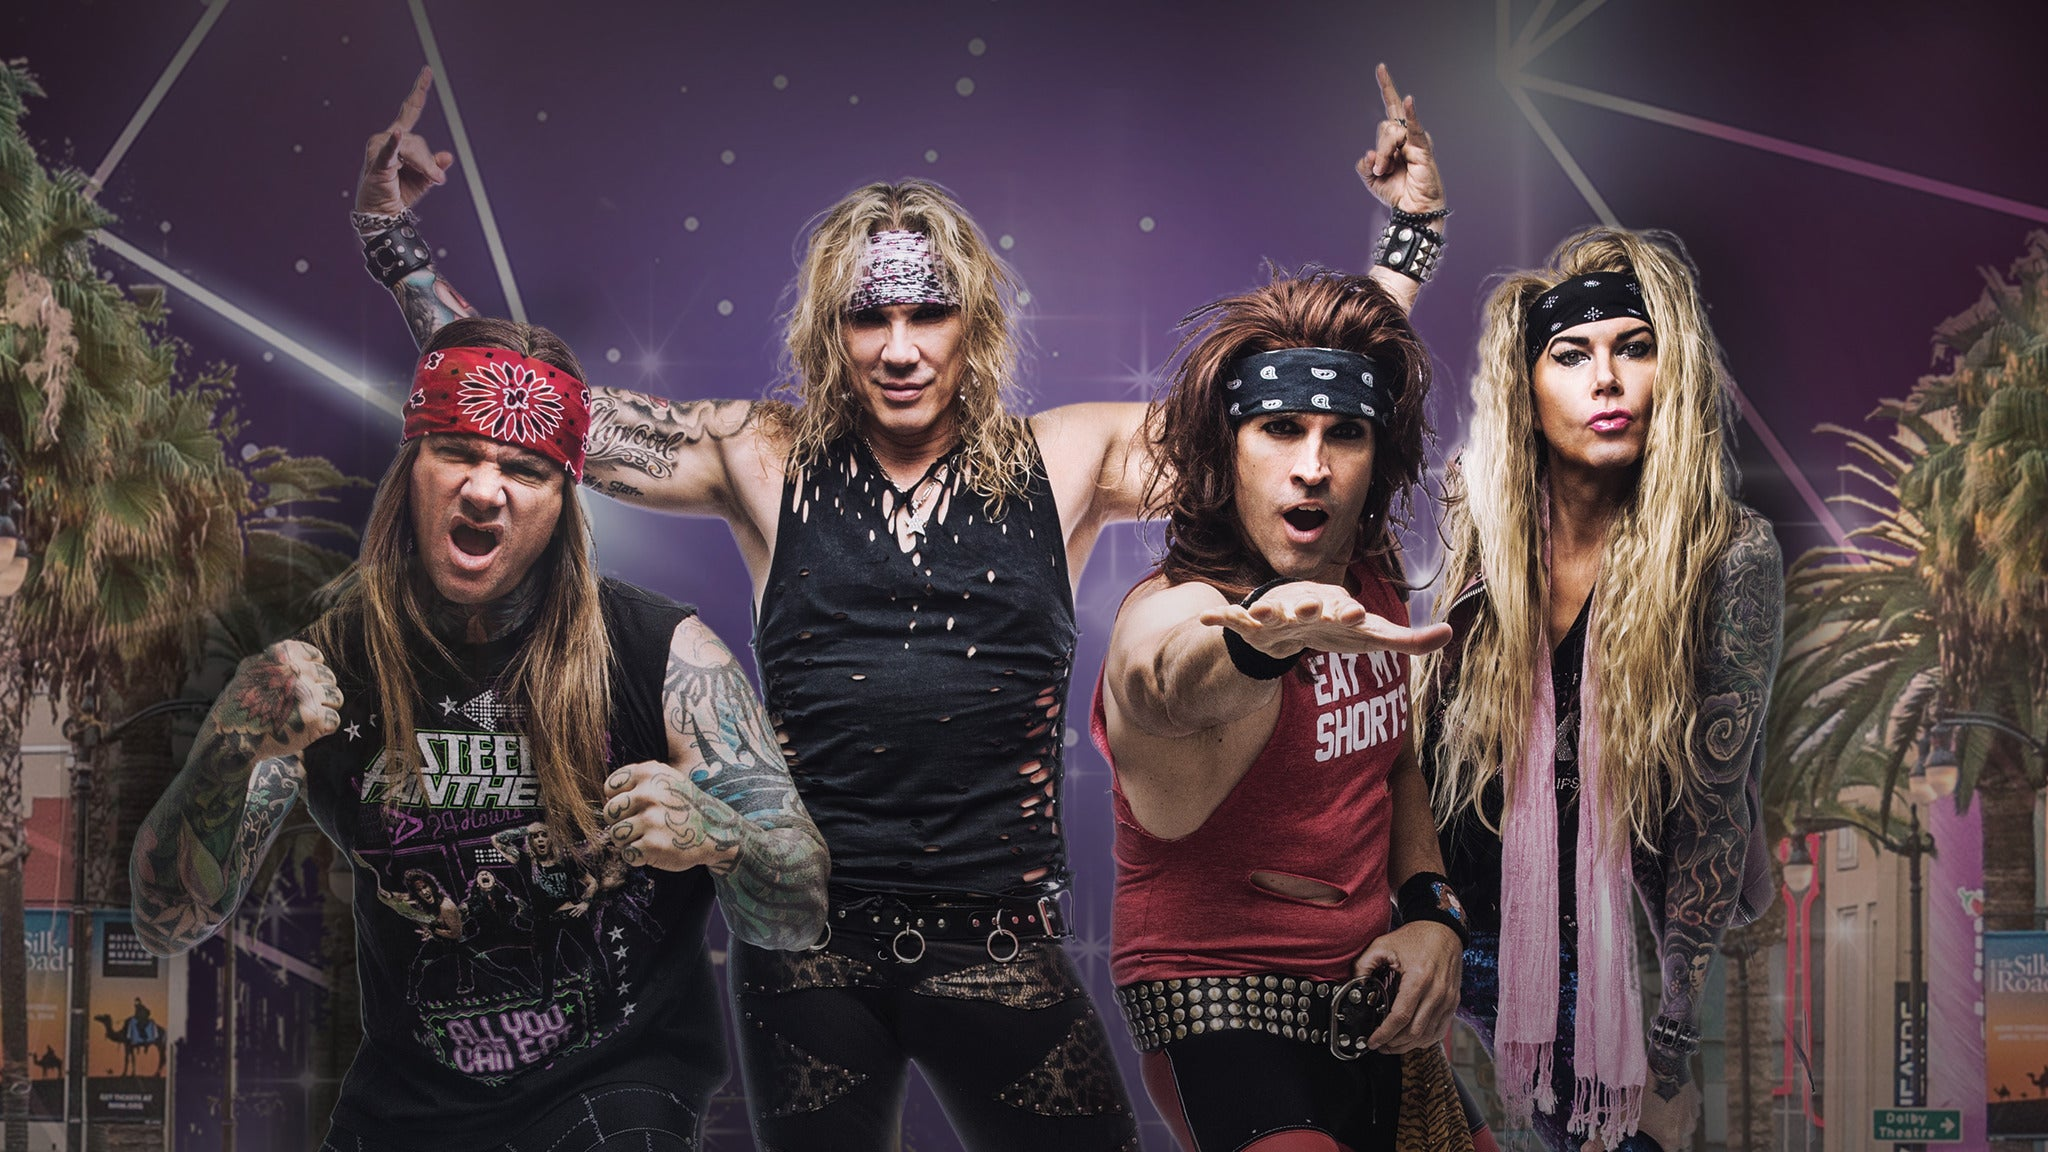 Bayou 95.7 Presents: Steel Panther 80's Summer Bash